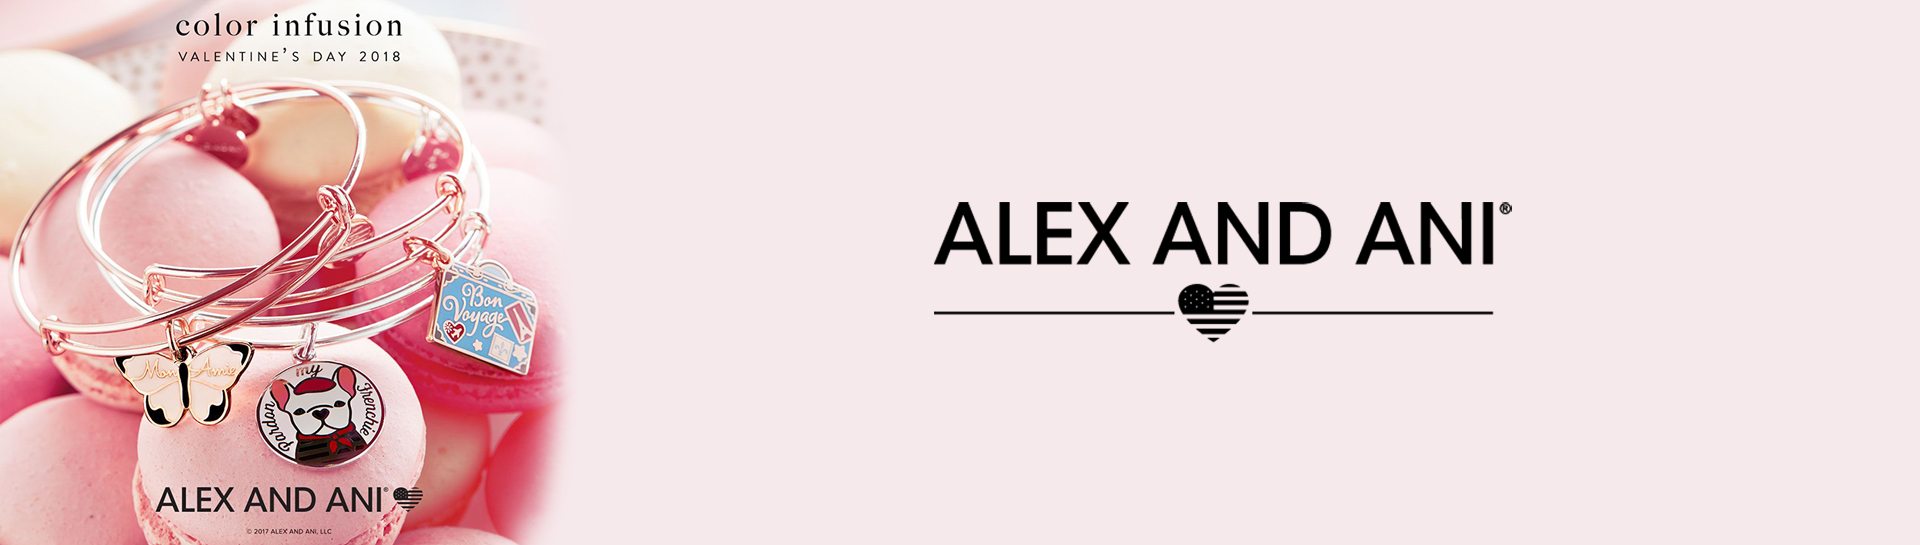 Alex and Ani Valentines day